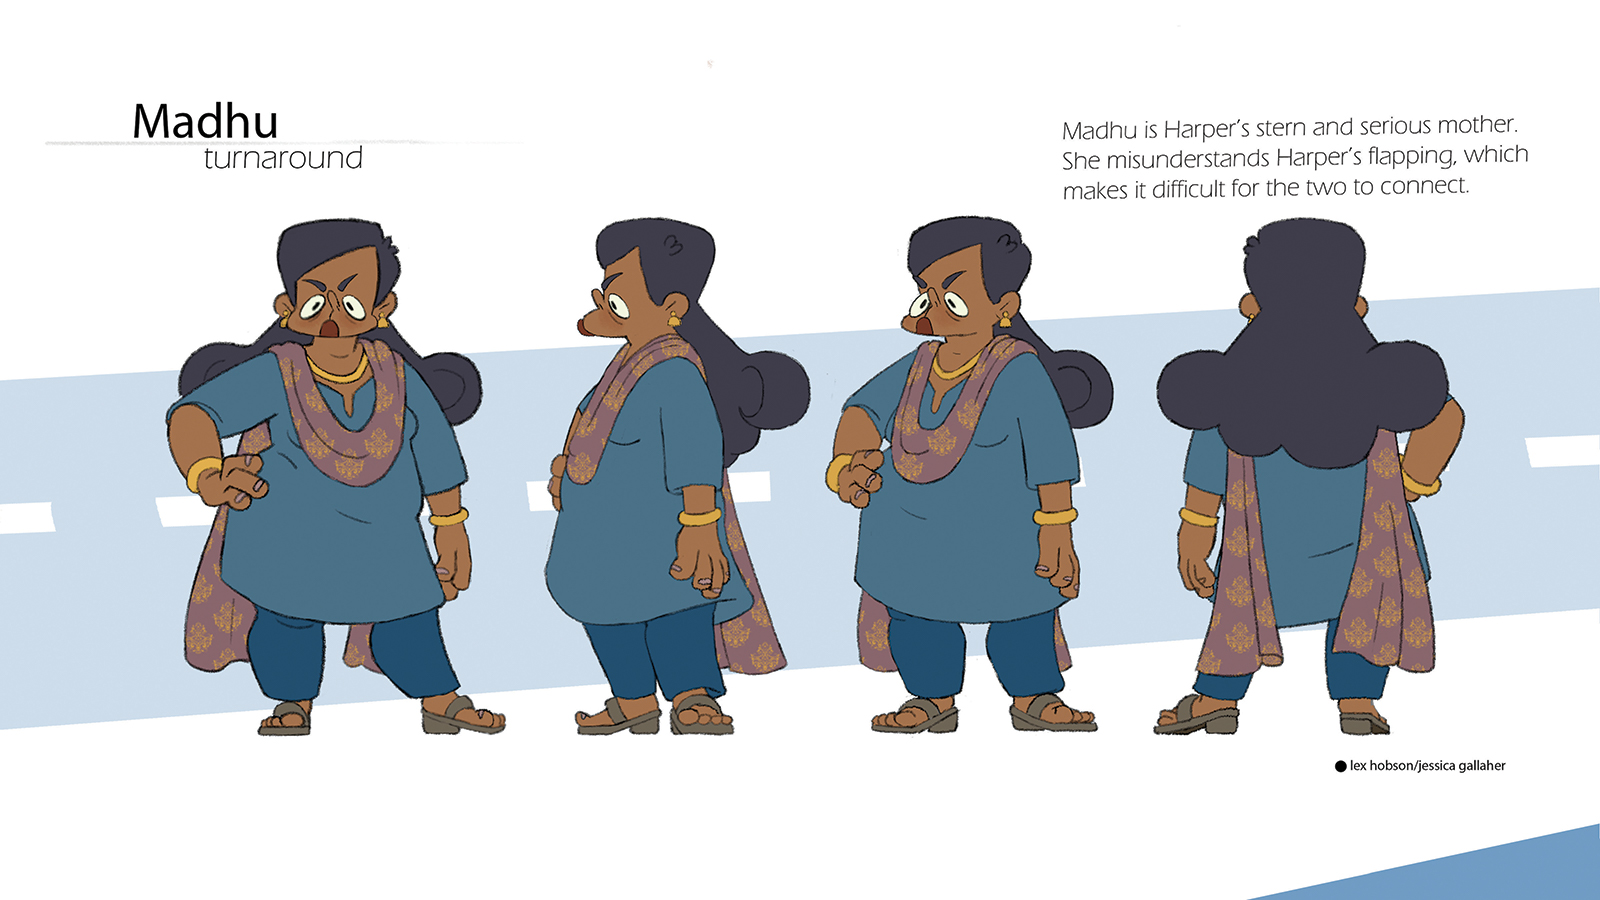 Turnaround of a woman named Madhu.